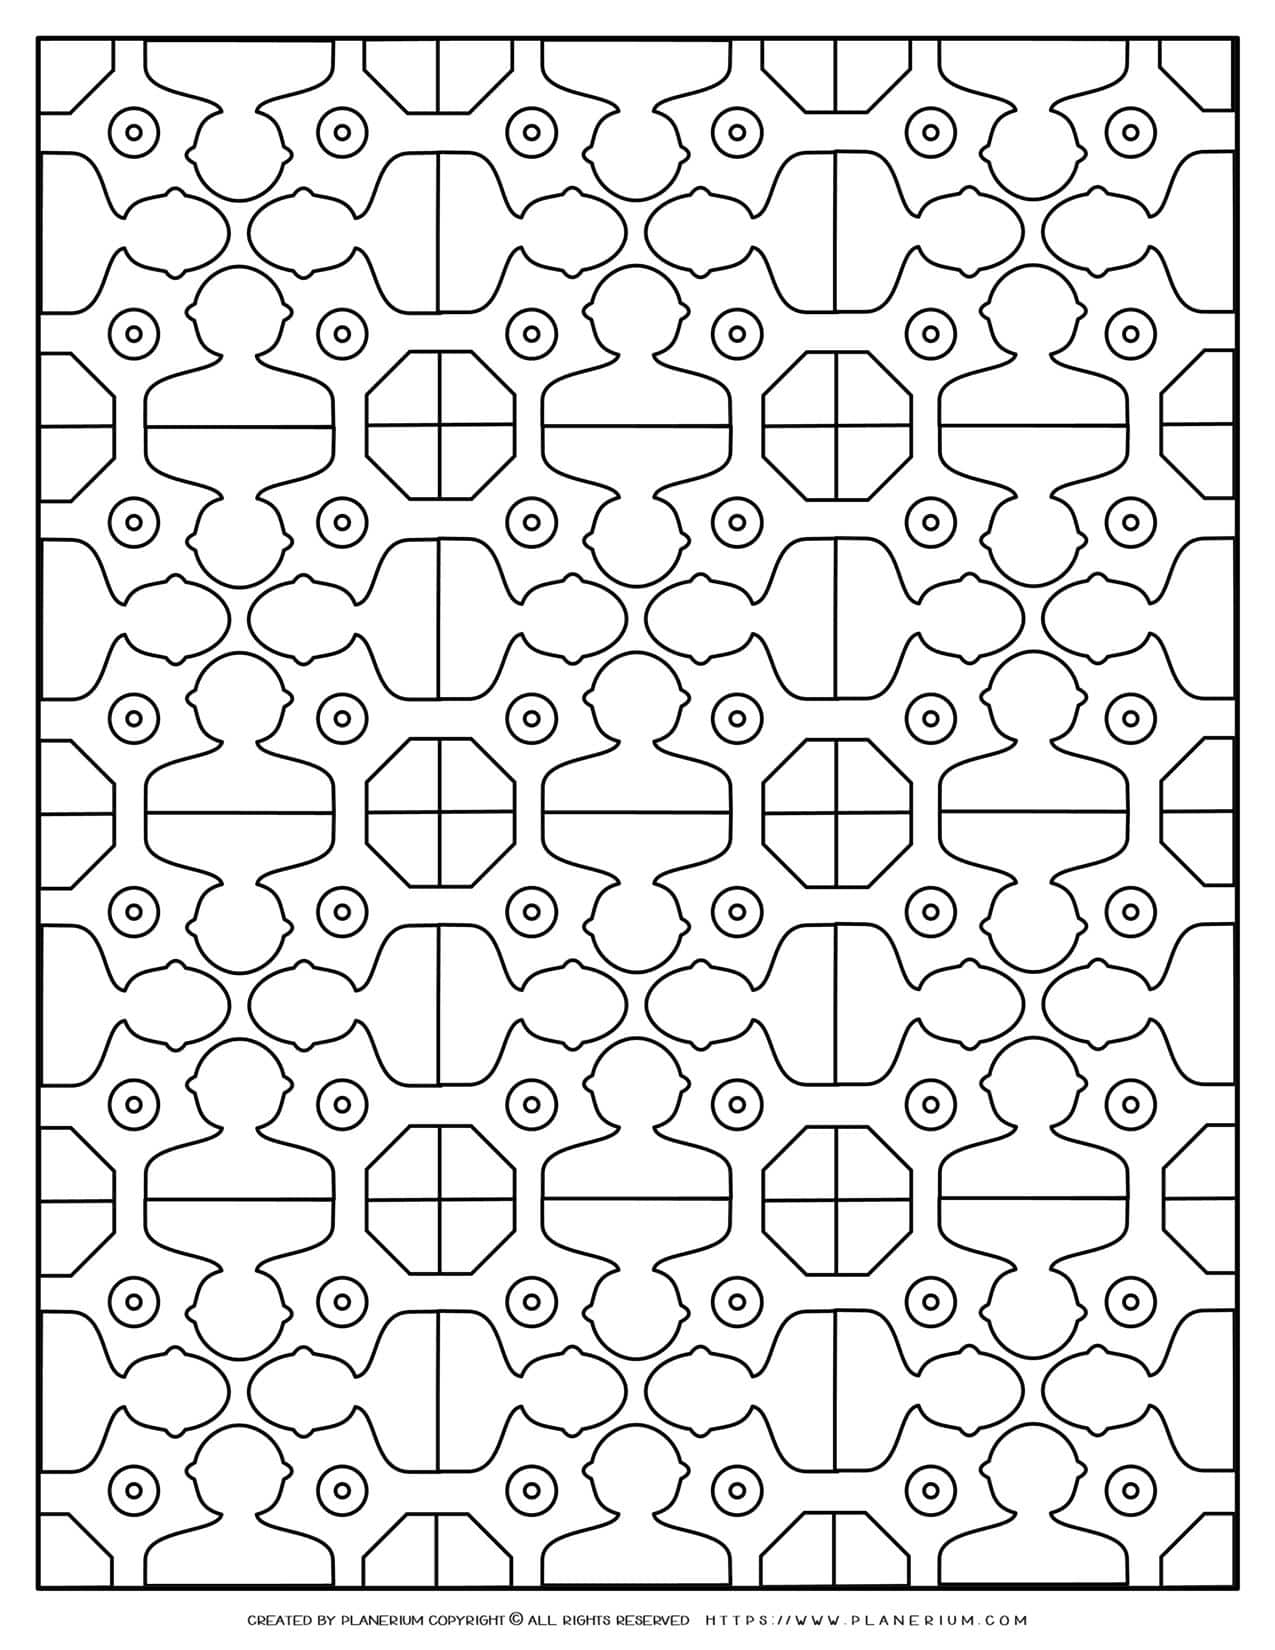 Adult Coloring Pages - People Pattern | Planerium